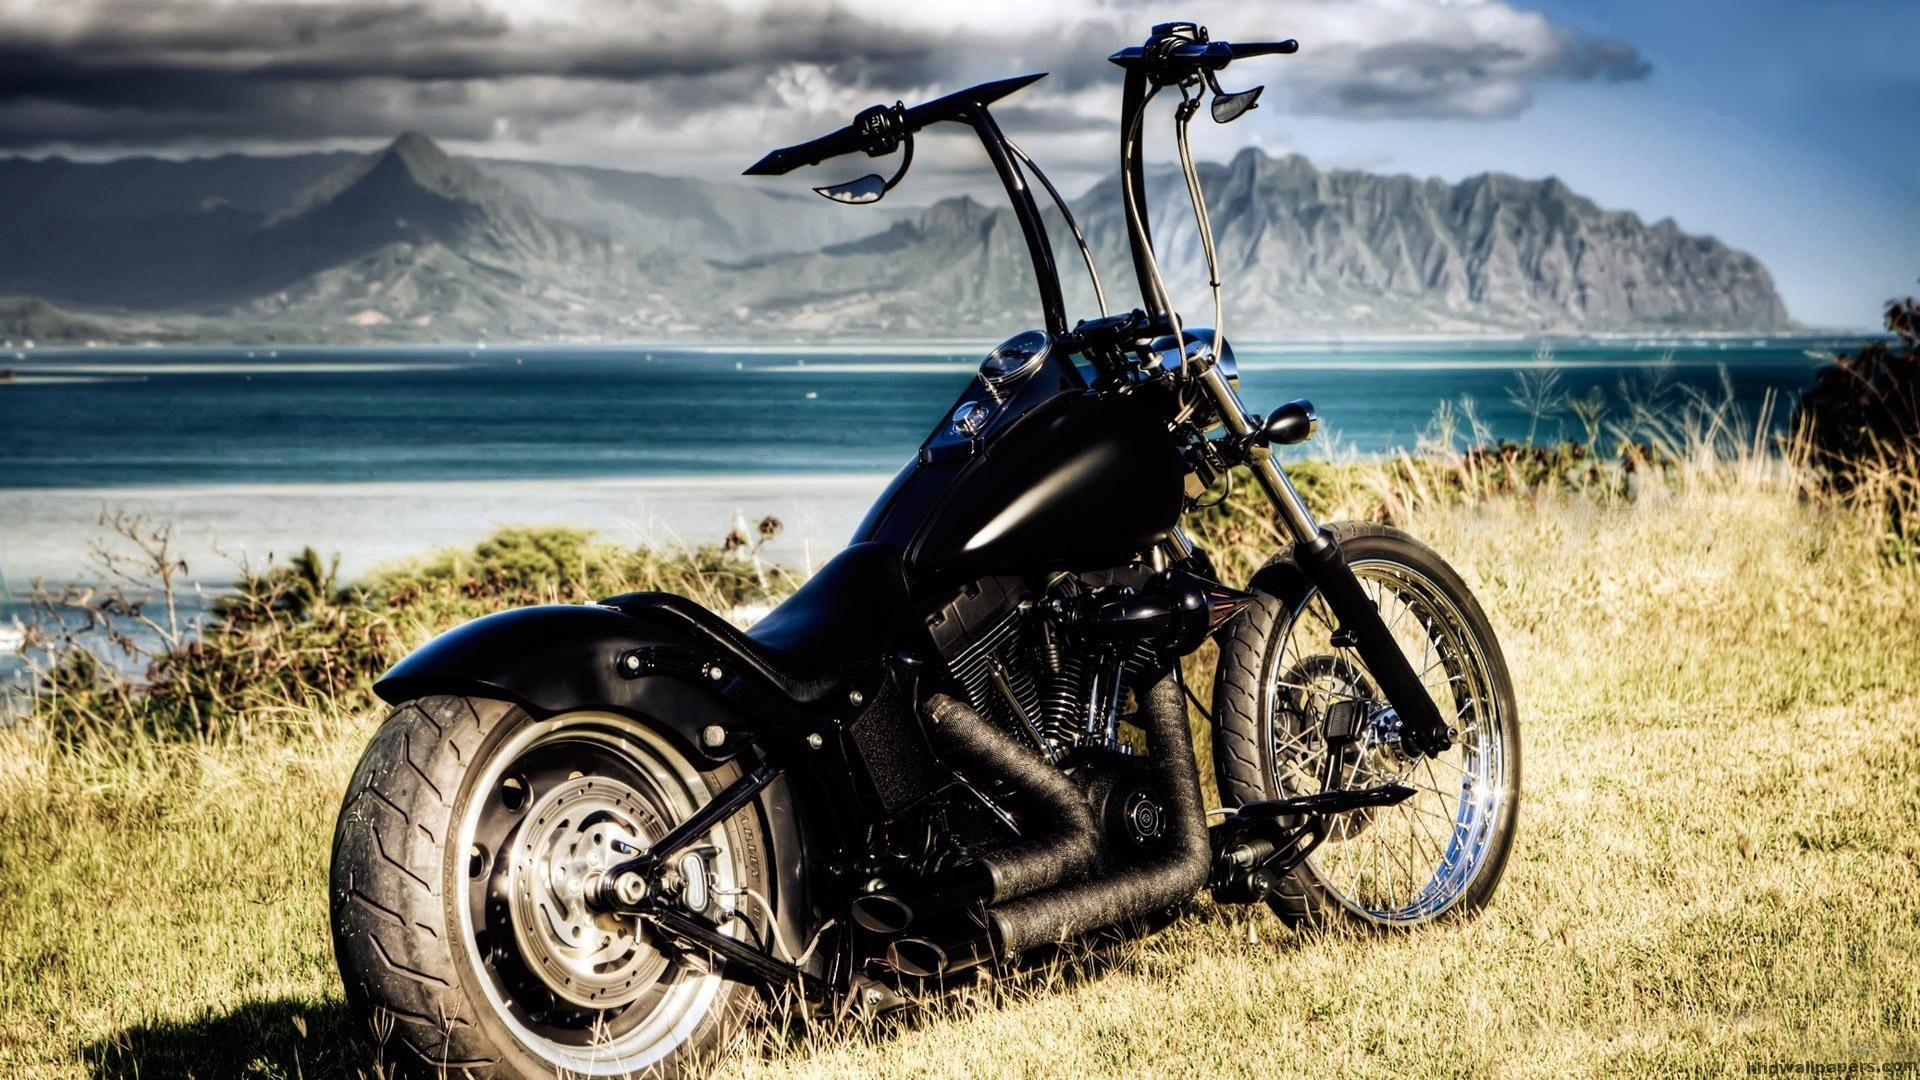 1920x1080 American Chopper Bike Hd Wallpapers